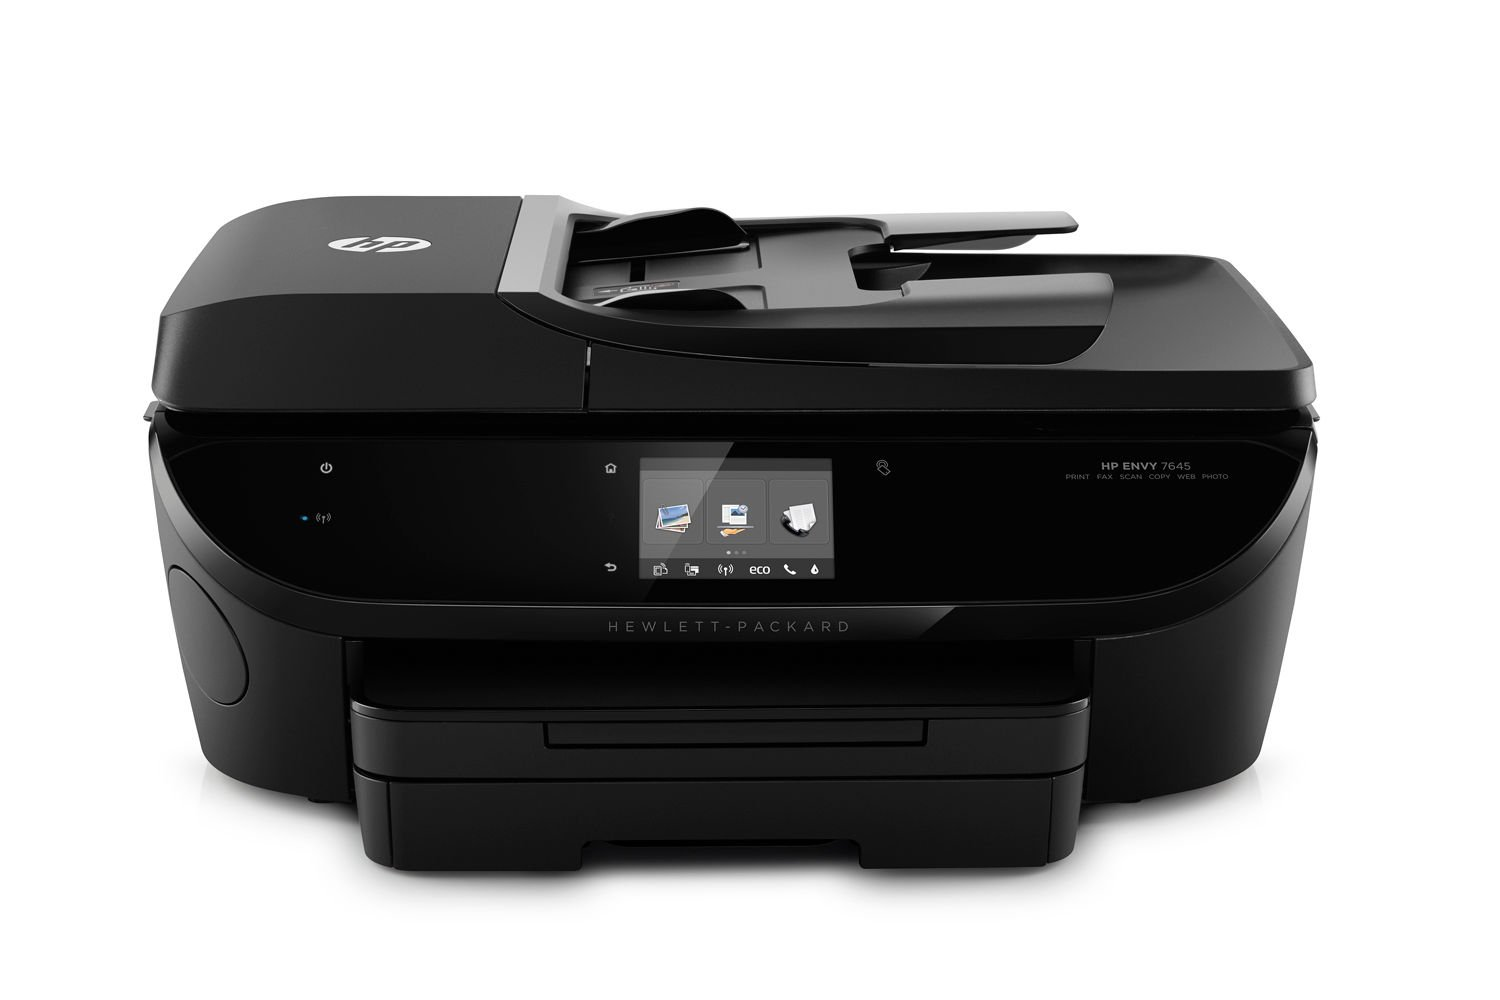 HP Envy 7645 e-All-in-One Color Inkjet Printer, Copier & Scanner - Black (Certified Refurbished)